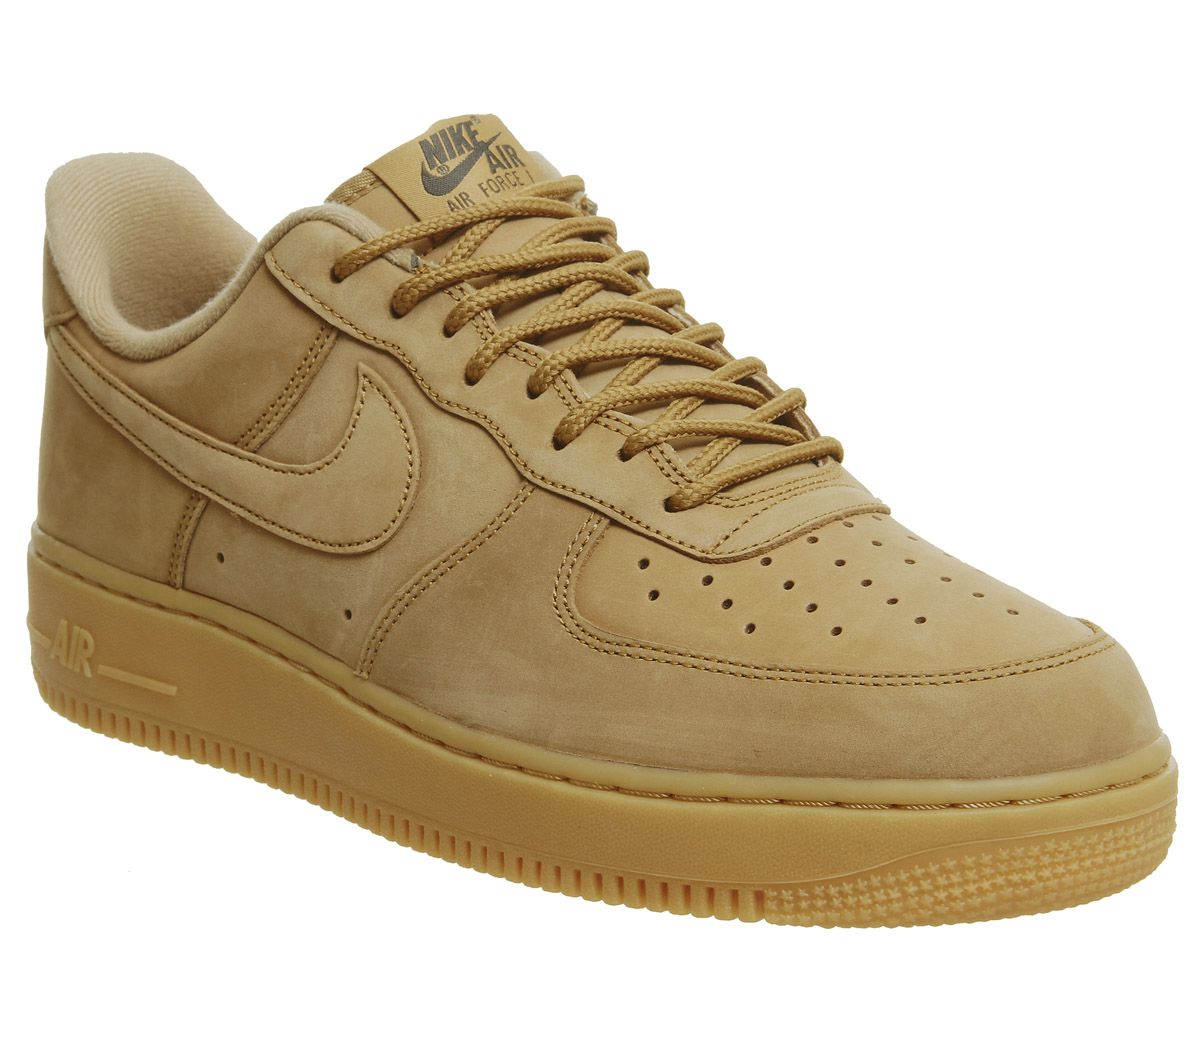 moins cher a4d88 80284 Nike Air Force One Trainers